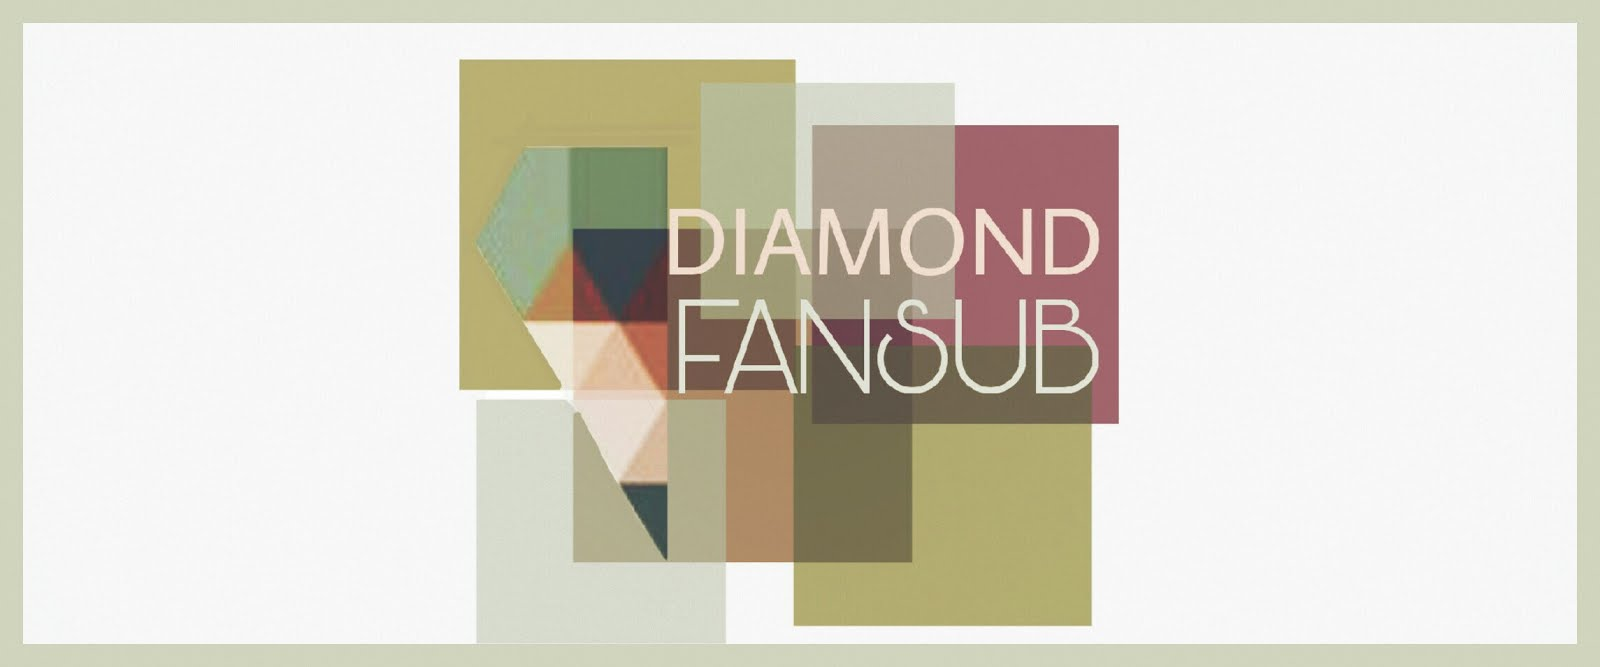 Diamond Fansub Team